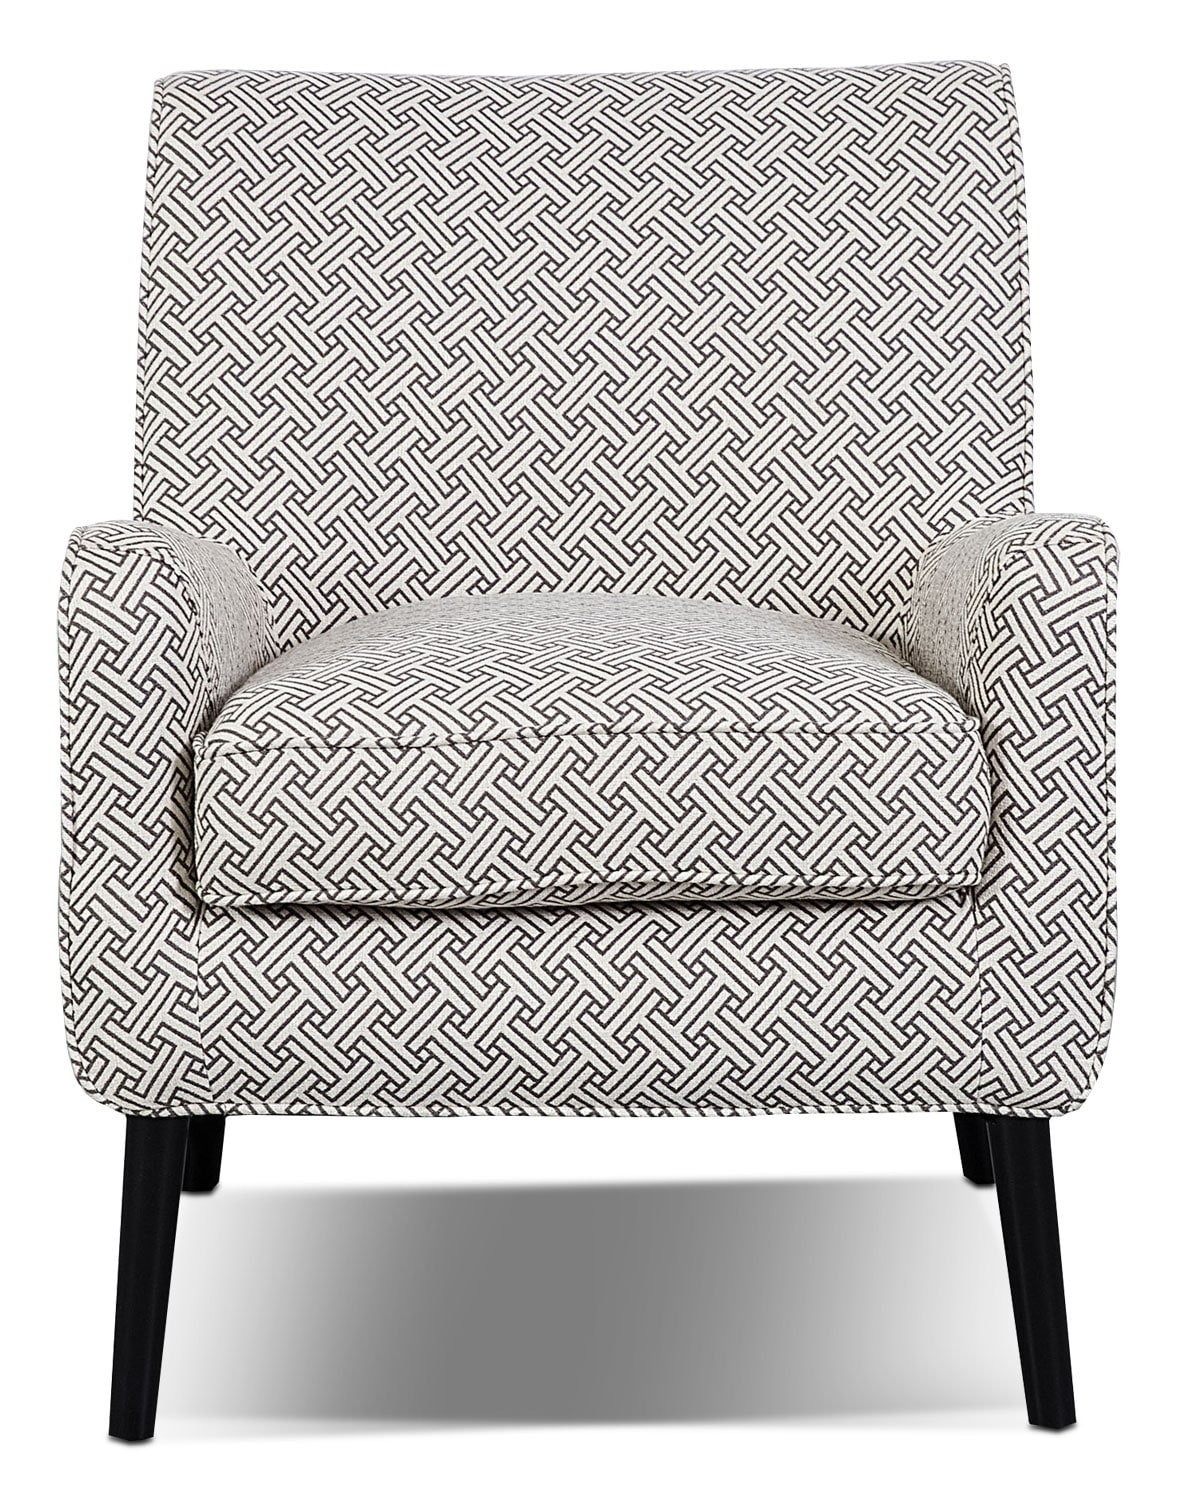 Living Room Furniture - Galo Linen-Look Fabric Accent Chair - Stencil